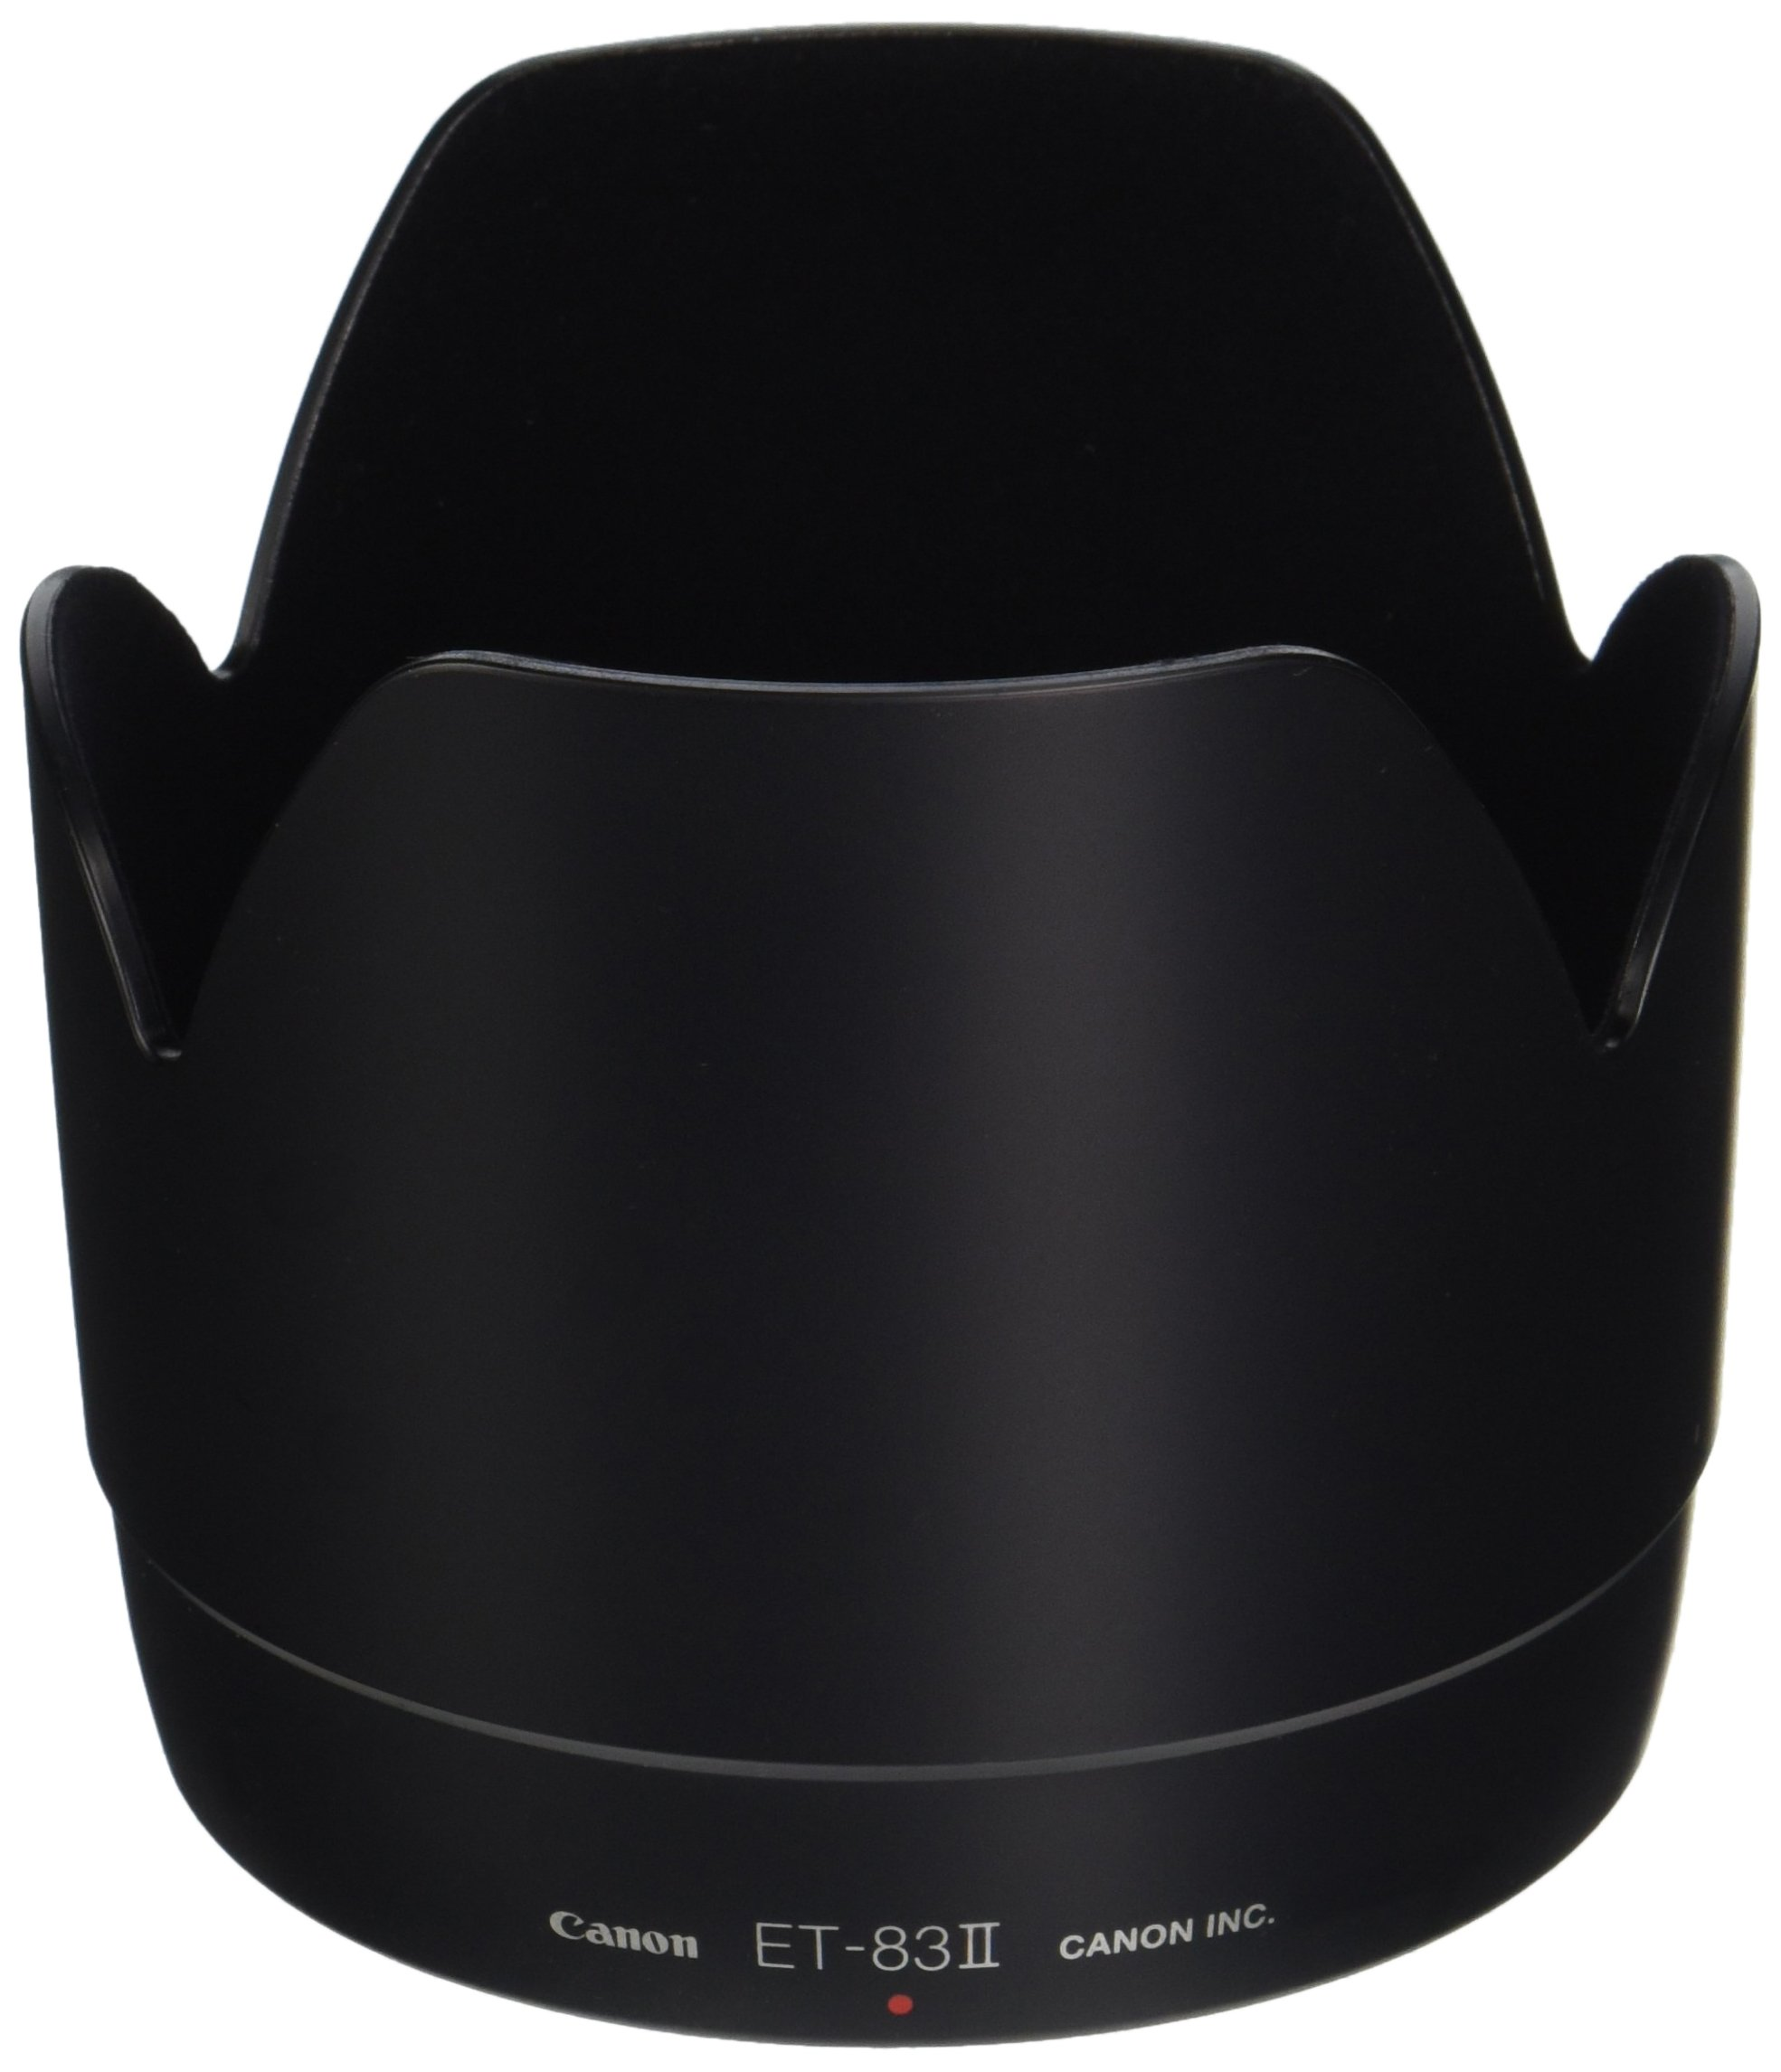 Canon ET-83II Lens Hood for Canon EF 70-200mm f/2.8L USM Lens by Canon